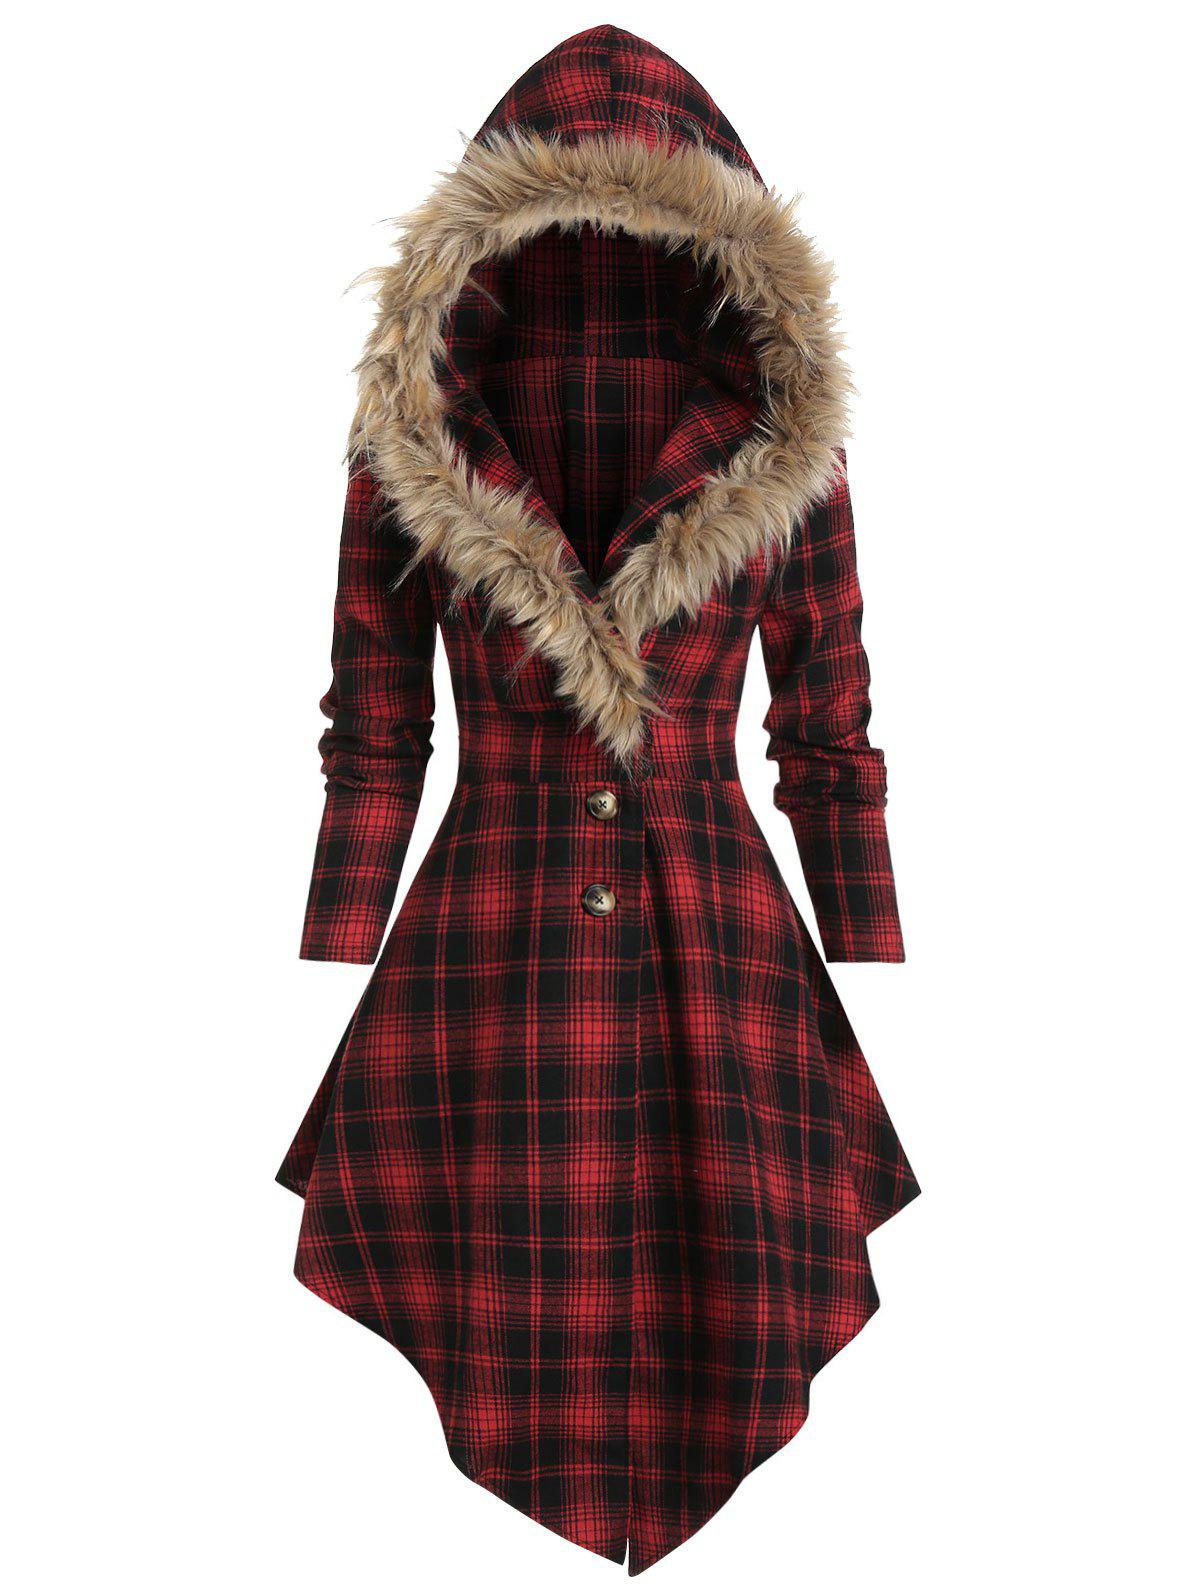 Trendy Plaid Print Lace-up Skirted Coat with Faux Fur Hood